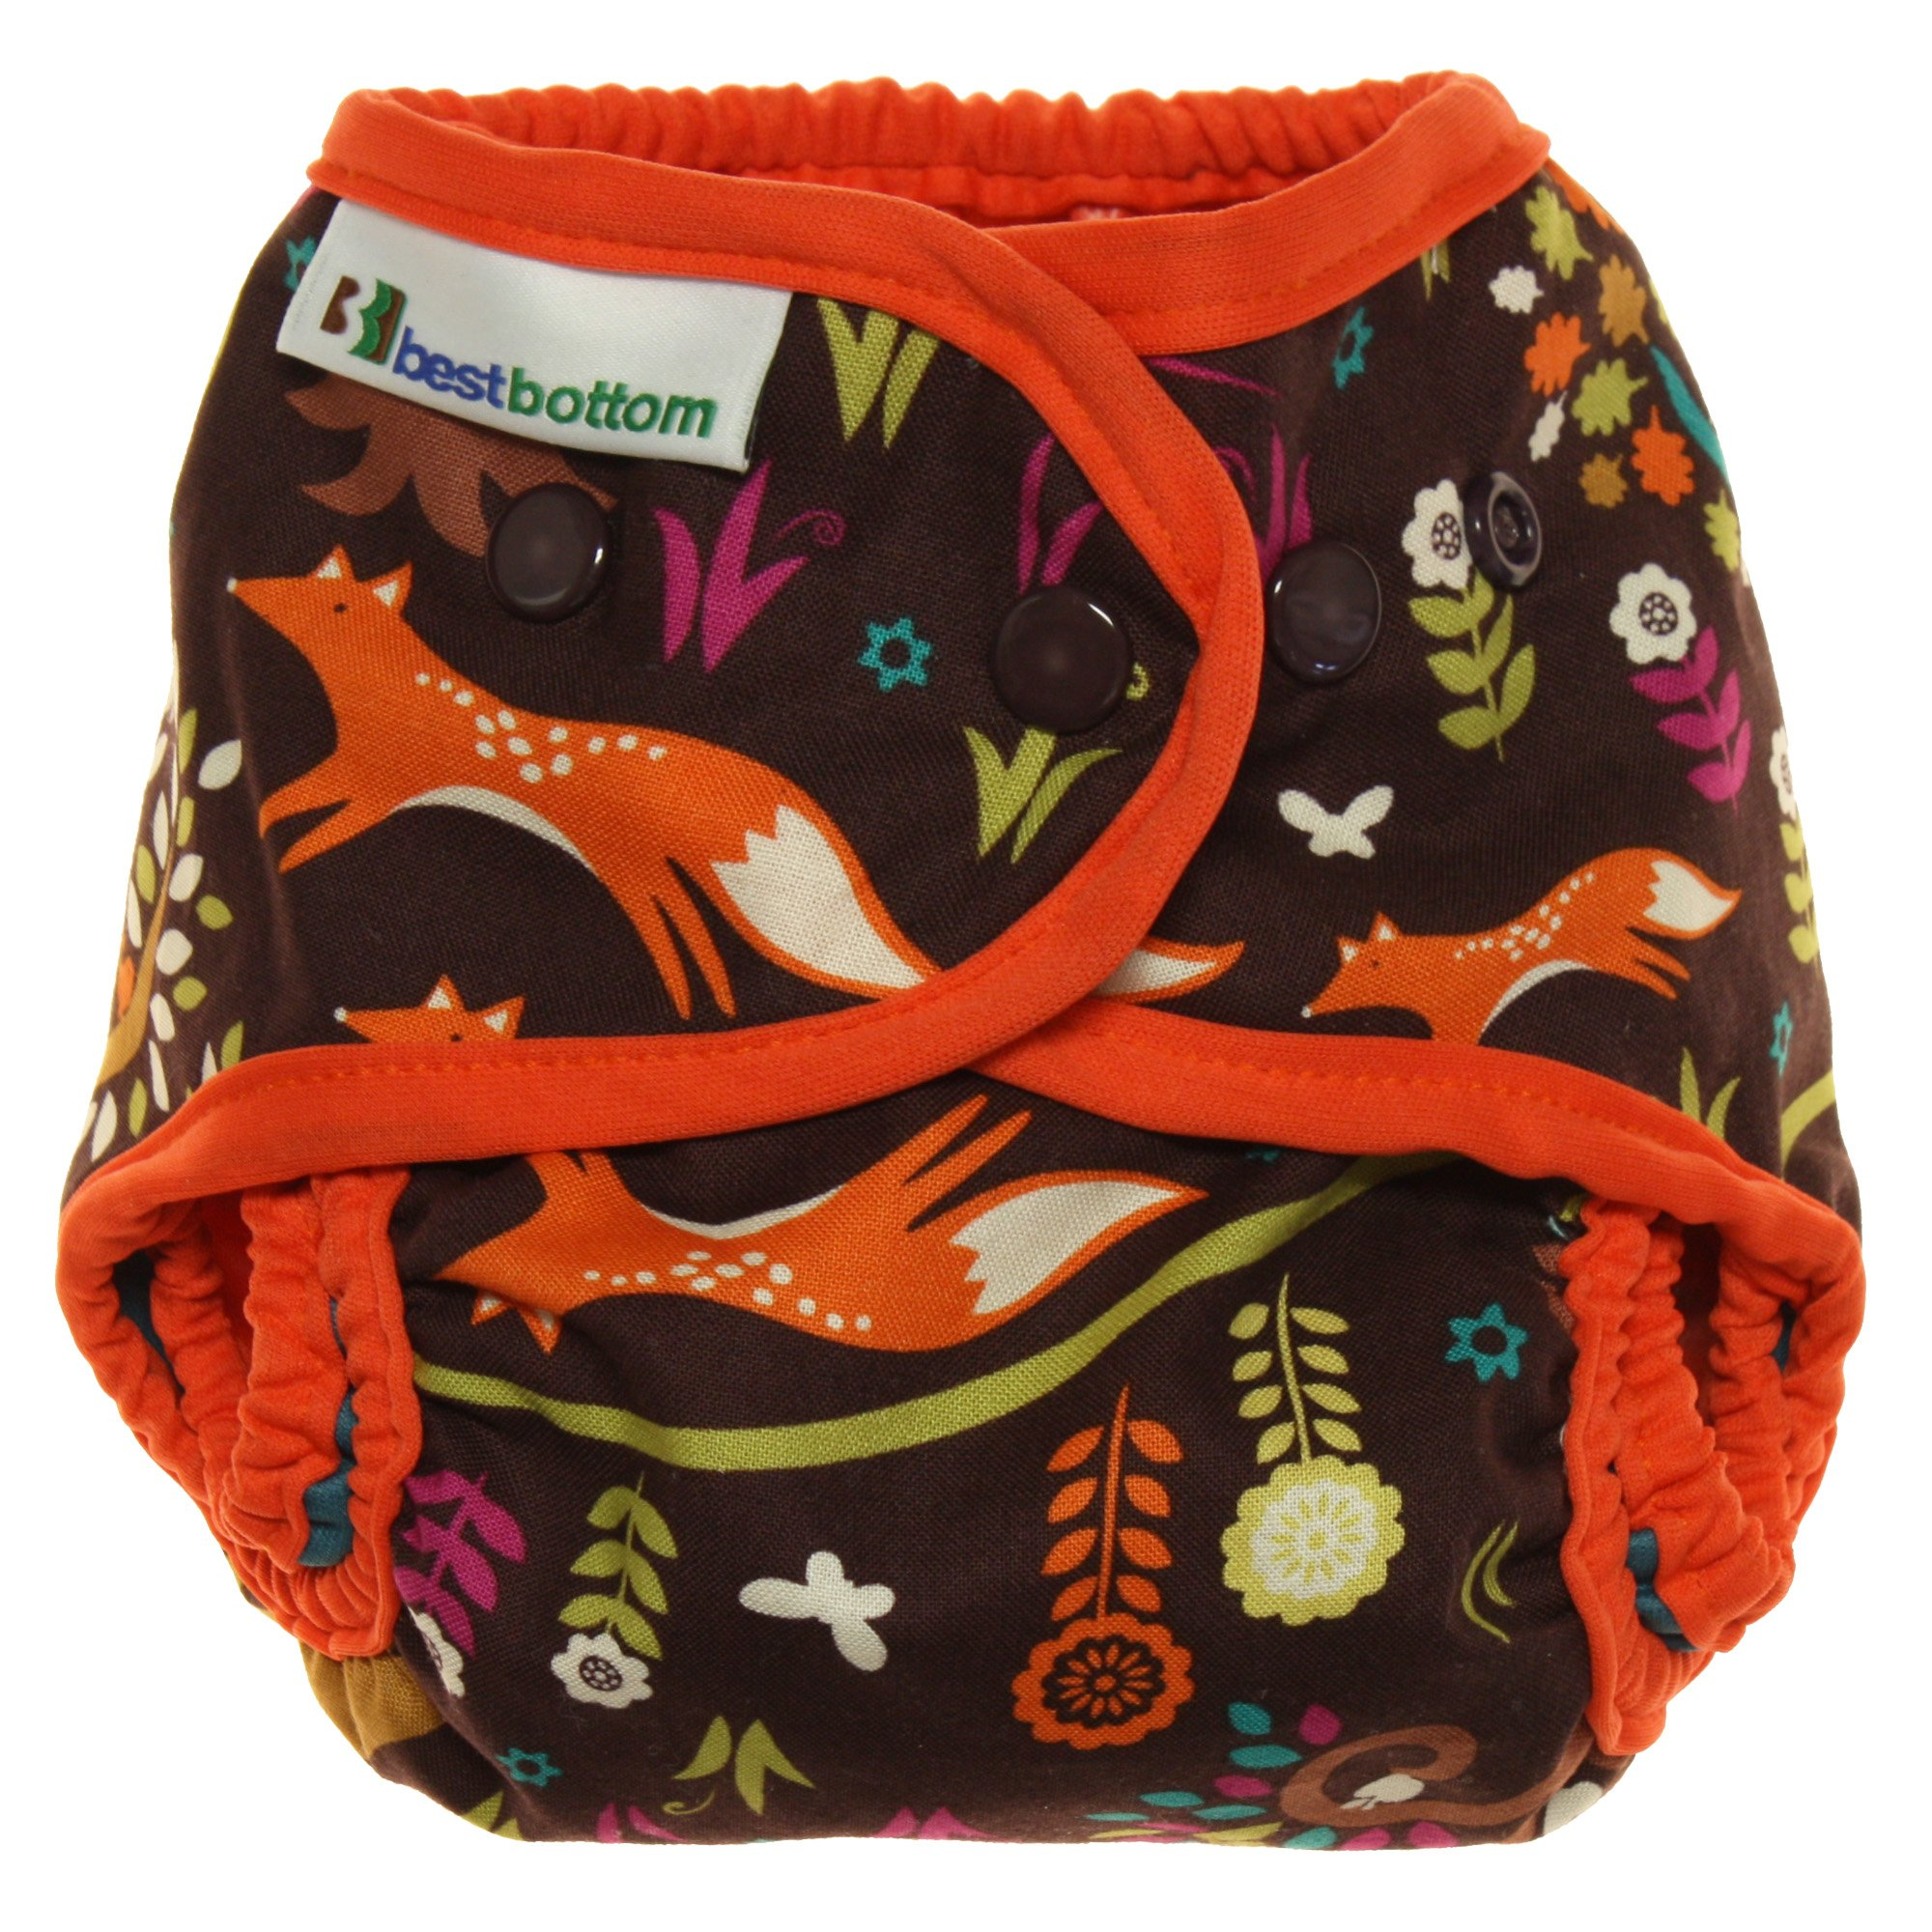 Amazon.com : Cloth Diapers by Best Bottom   Cotton Shell - Made In USA by  USA company - Jewel Woods : Baby